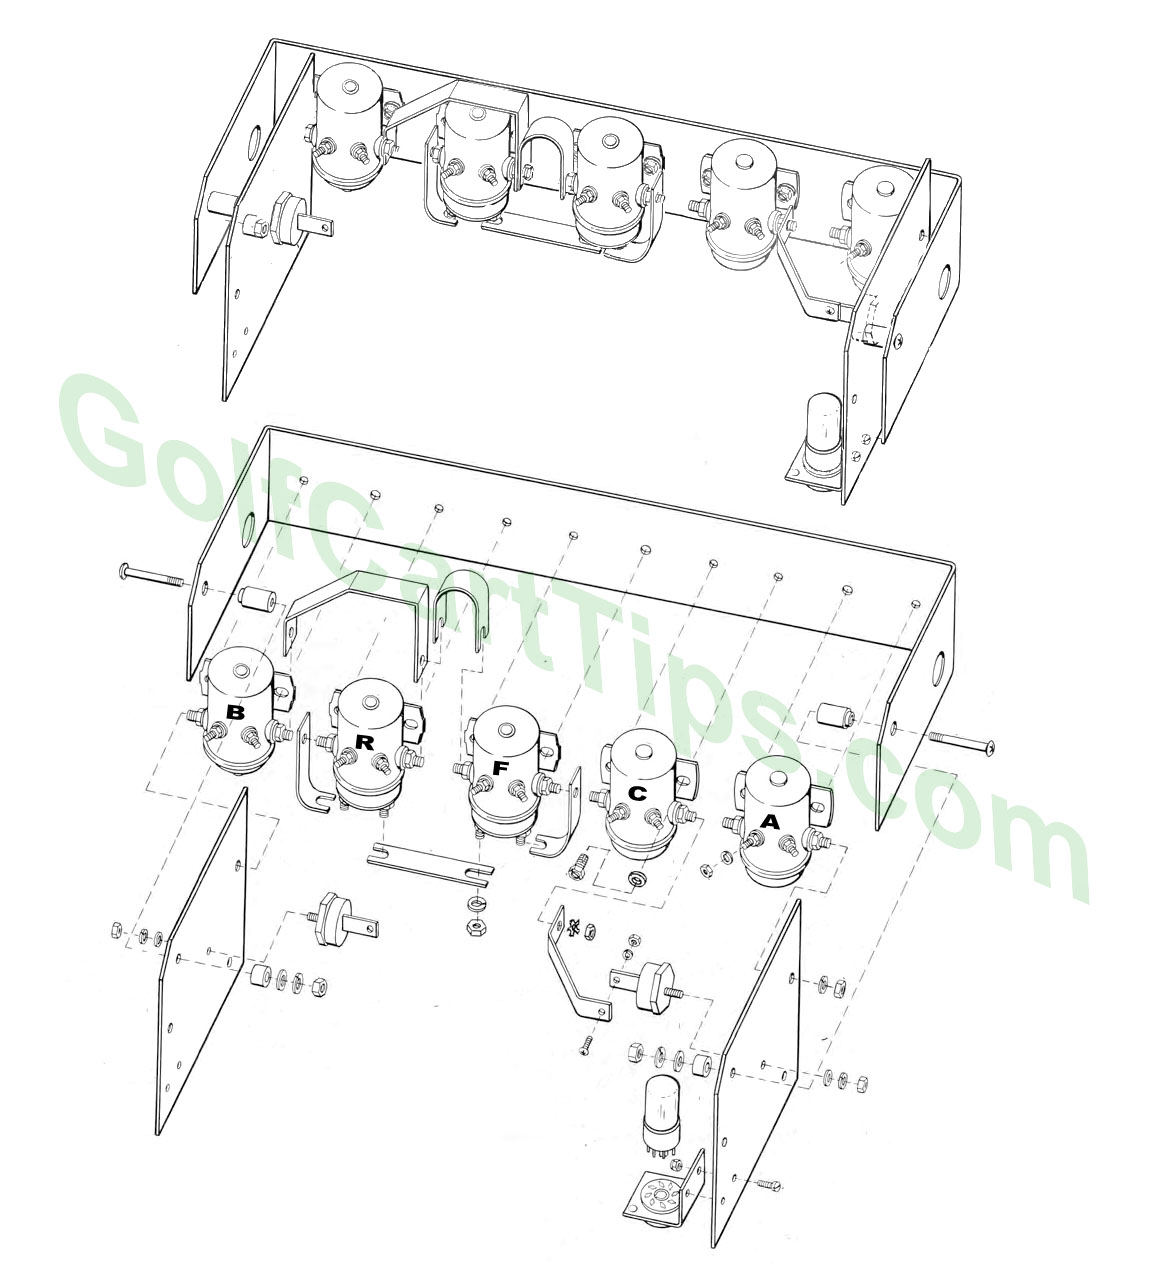 harley golf cart clutch parts, yamaha golf cart schematics, harley davidson parts schematics, harley wiring, club car golf cart schematics, harley golf cart restoration, harley golf cart 2 stroke, harley davidson engine schematics, on harley davidson golf cart wiring schematic 19